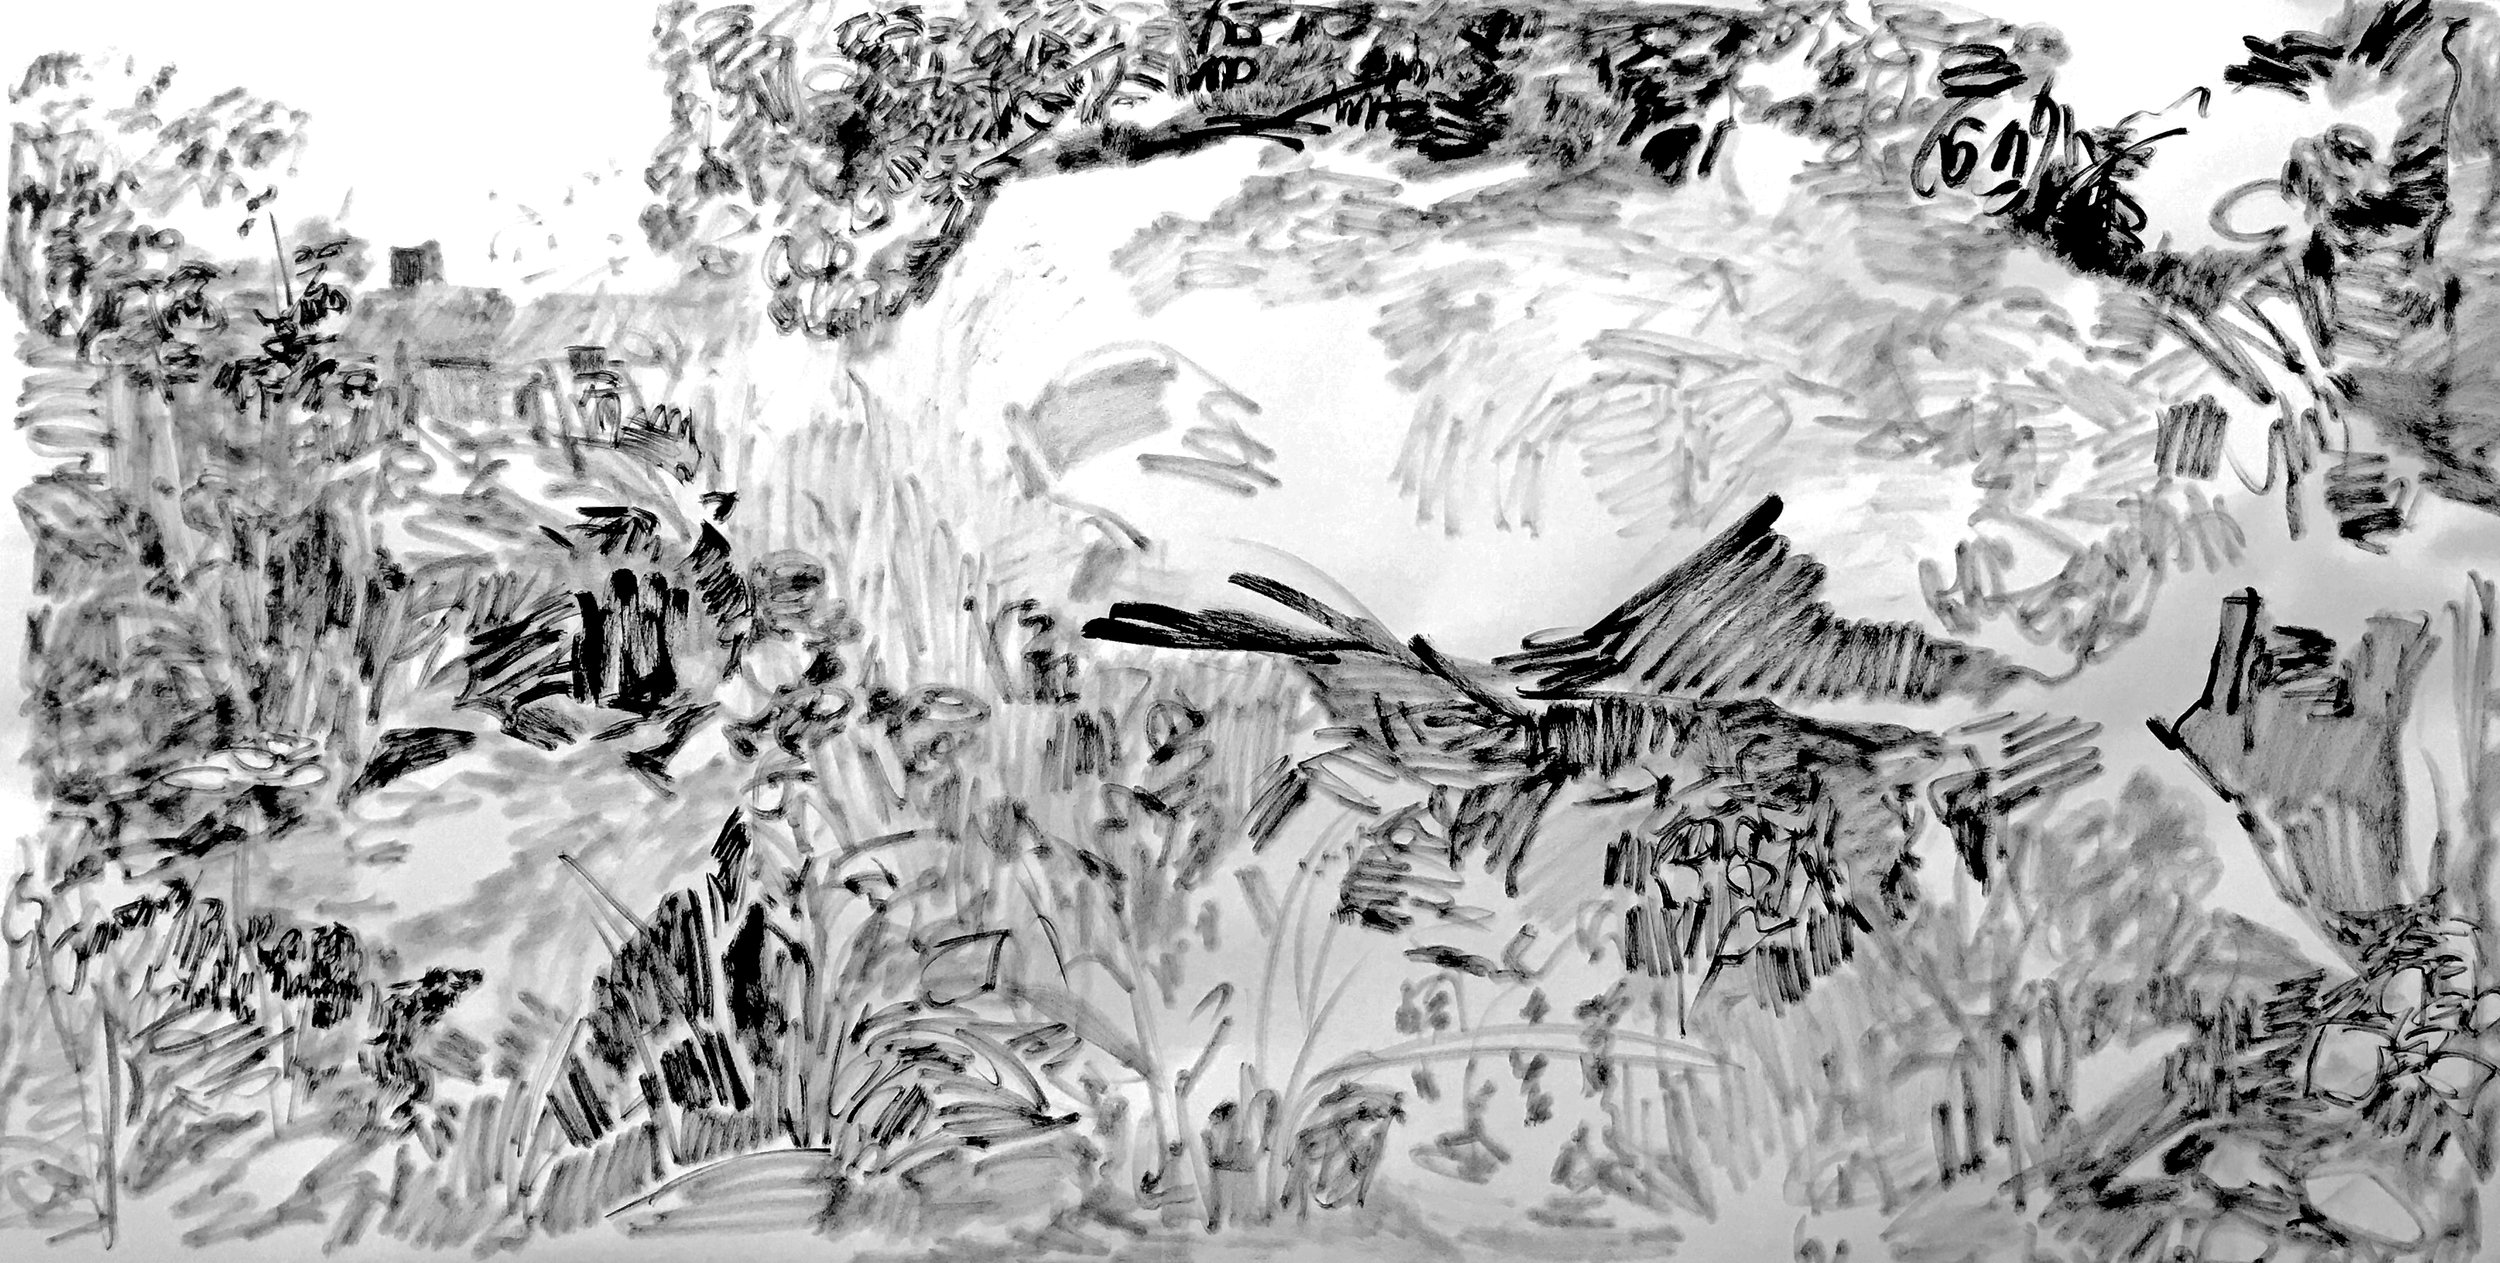 ink on paper, 36 x 80 inches